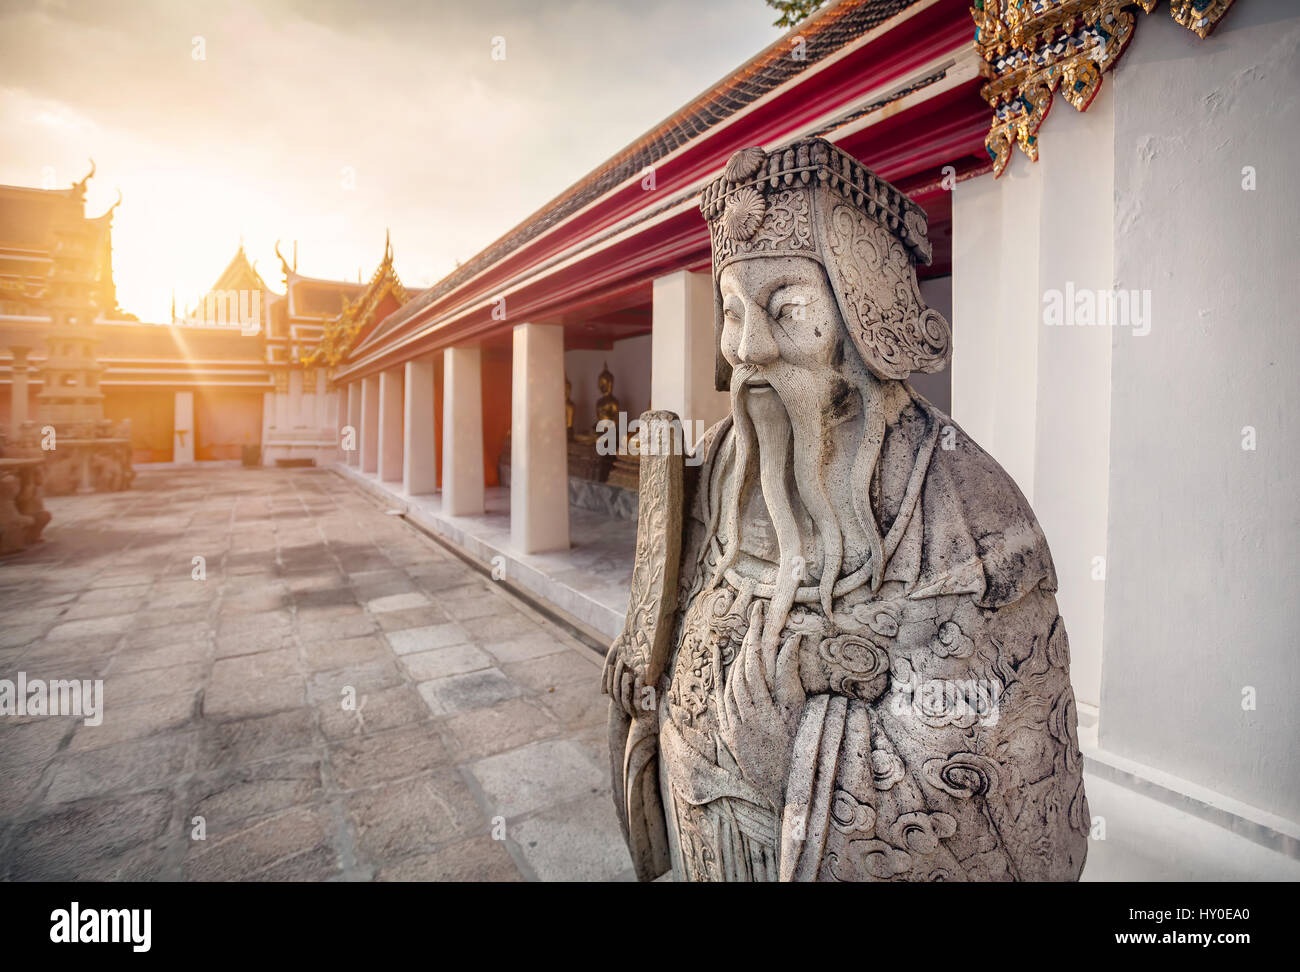 Stone statue of monk in Buddhist Temple Wat Pho in Bangkok, Thailand - Stock Image